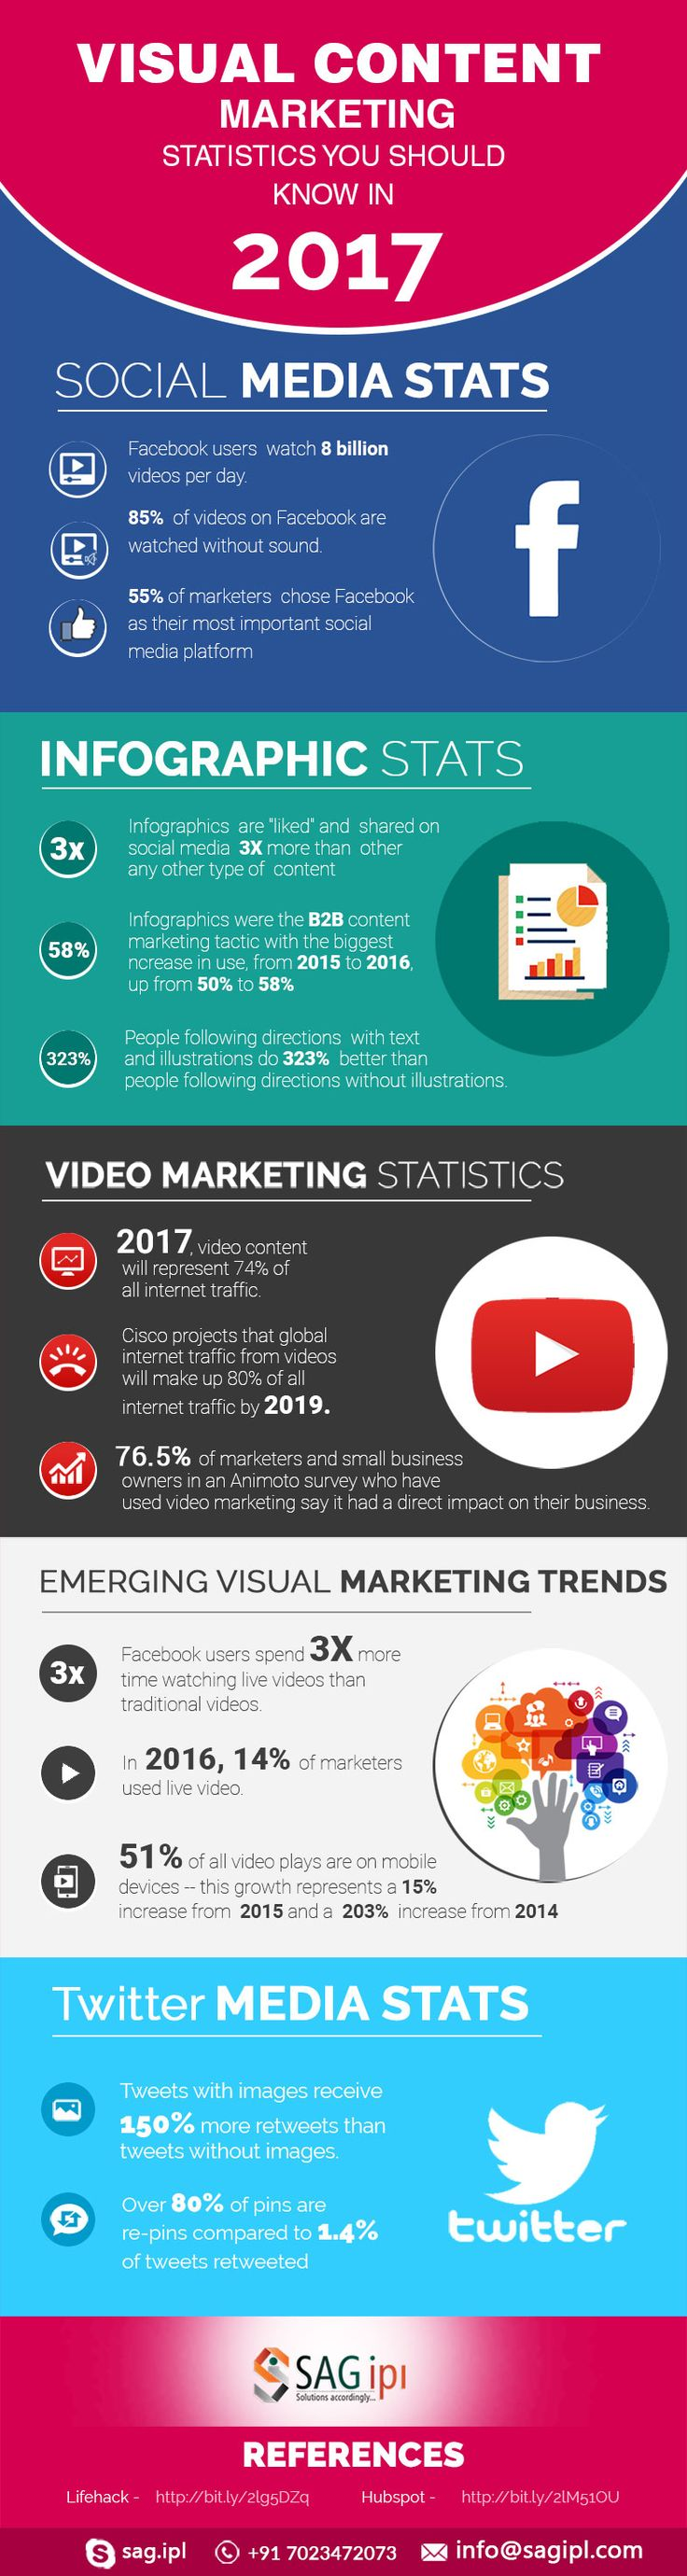 Visual Content Marketing Statistics You Should Know In 2017 #Infographic #ContentMarketing